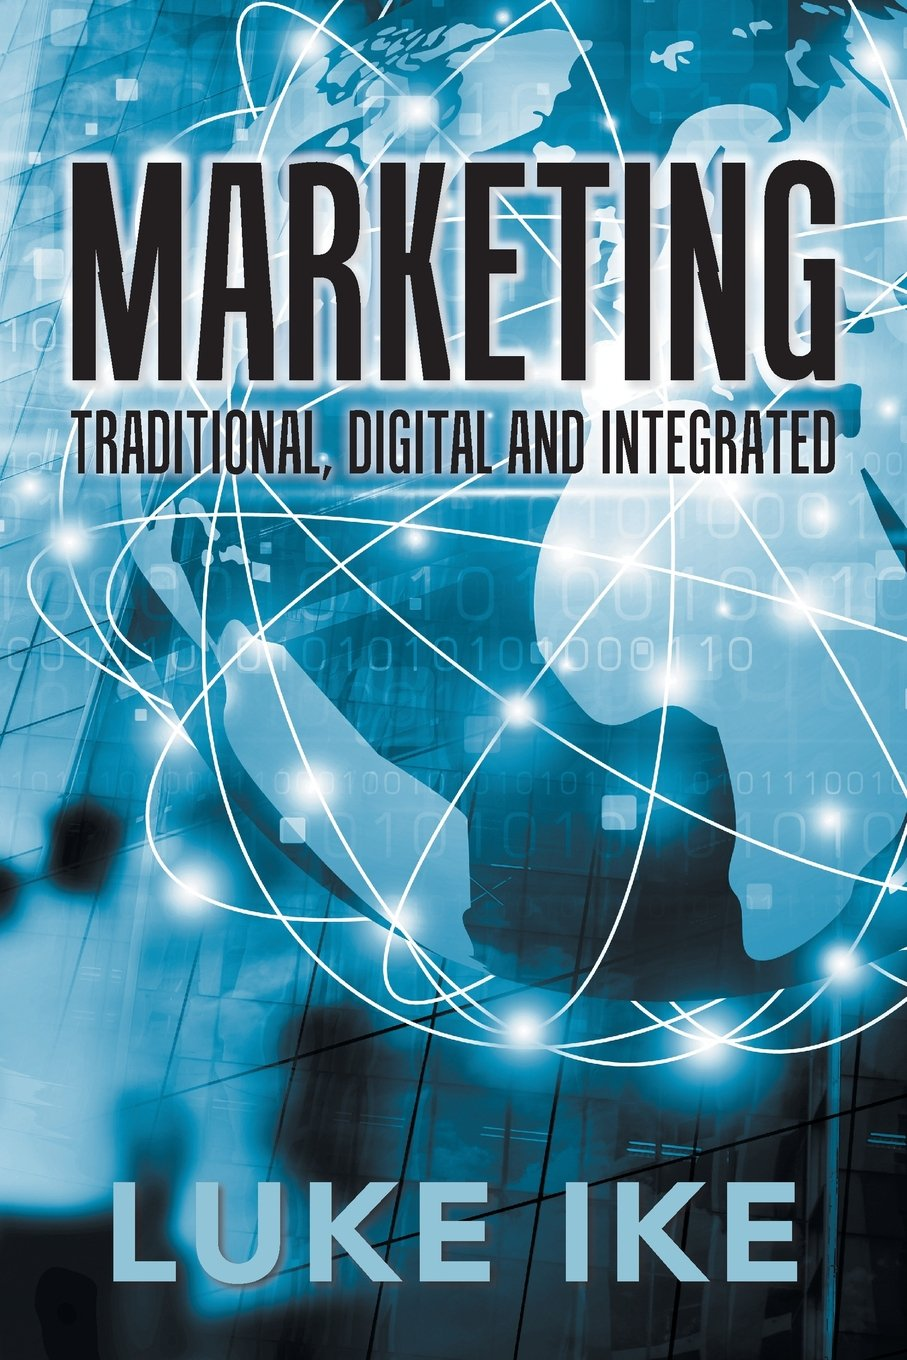 Download Marketing: Traditional, Digital and Integrated ebook